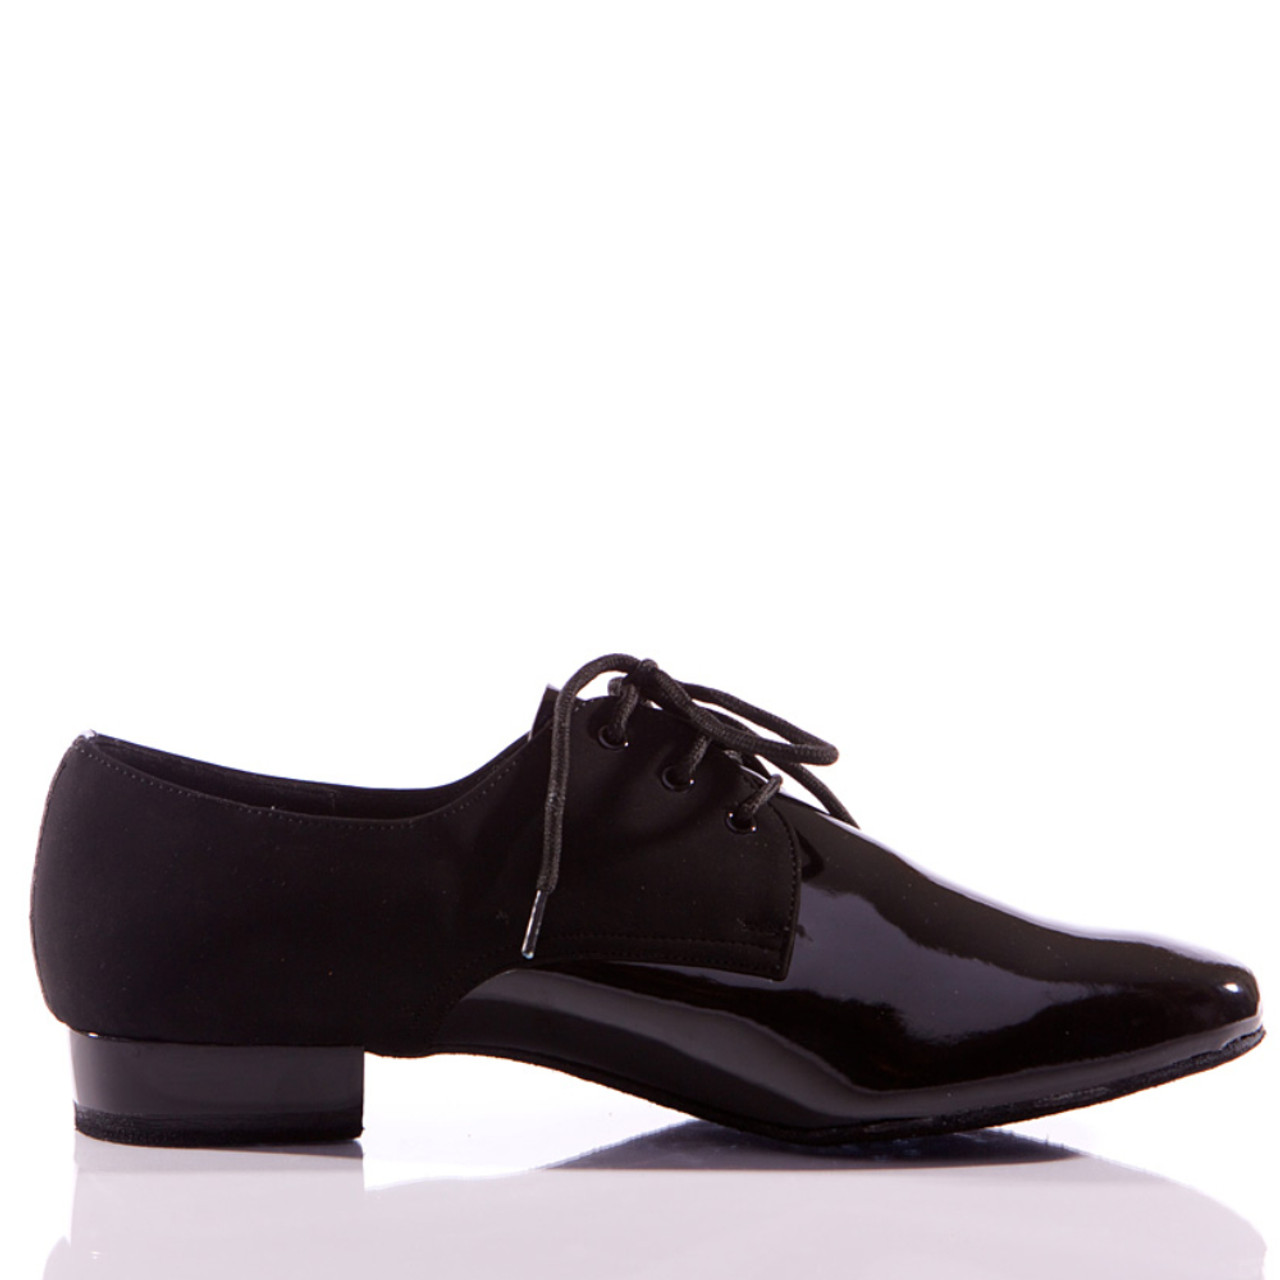 4b3dc775f2be Hector - Men s Black Nubuck and Patent Leather Dance Shoe - Standard Heels  - Burju Shoes